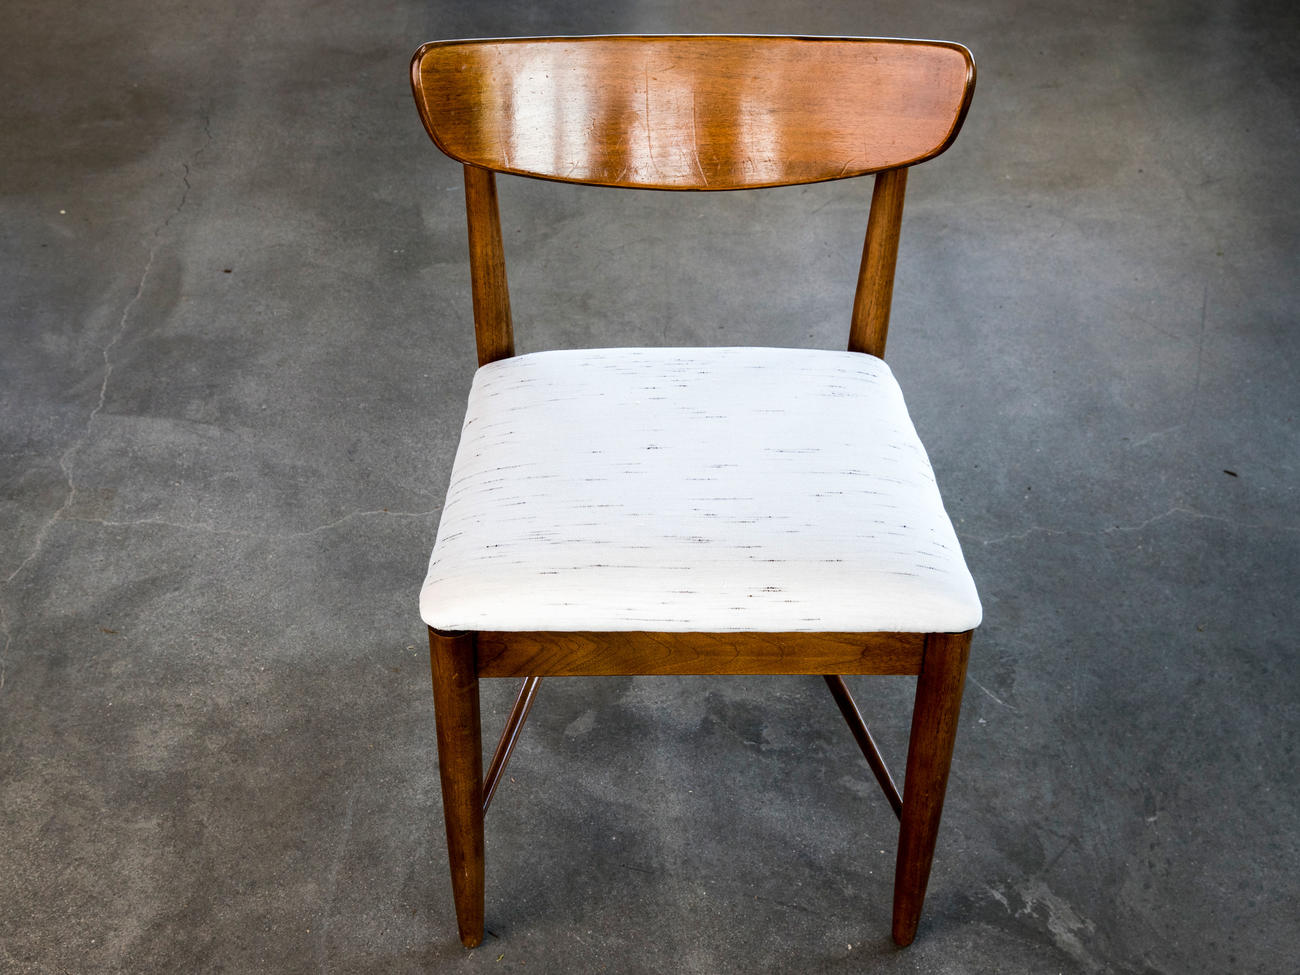 How to Re-Upholster a Dining Chair